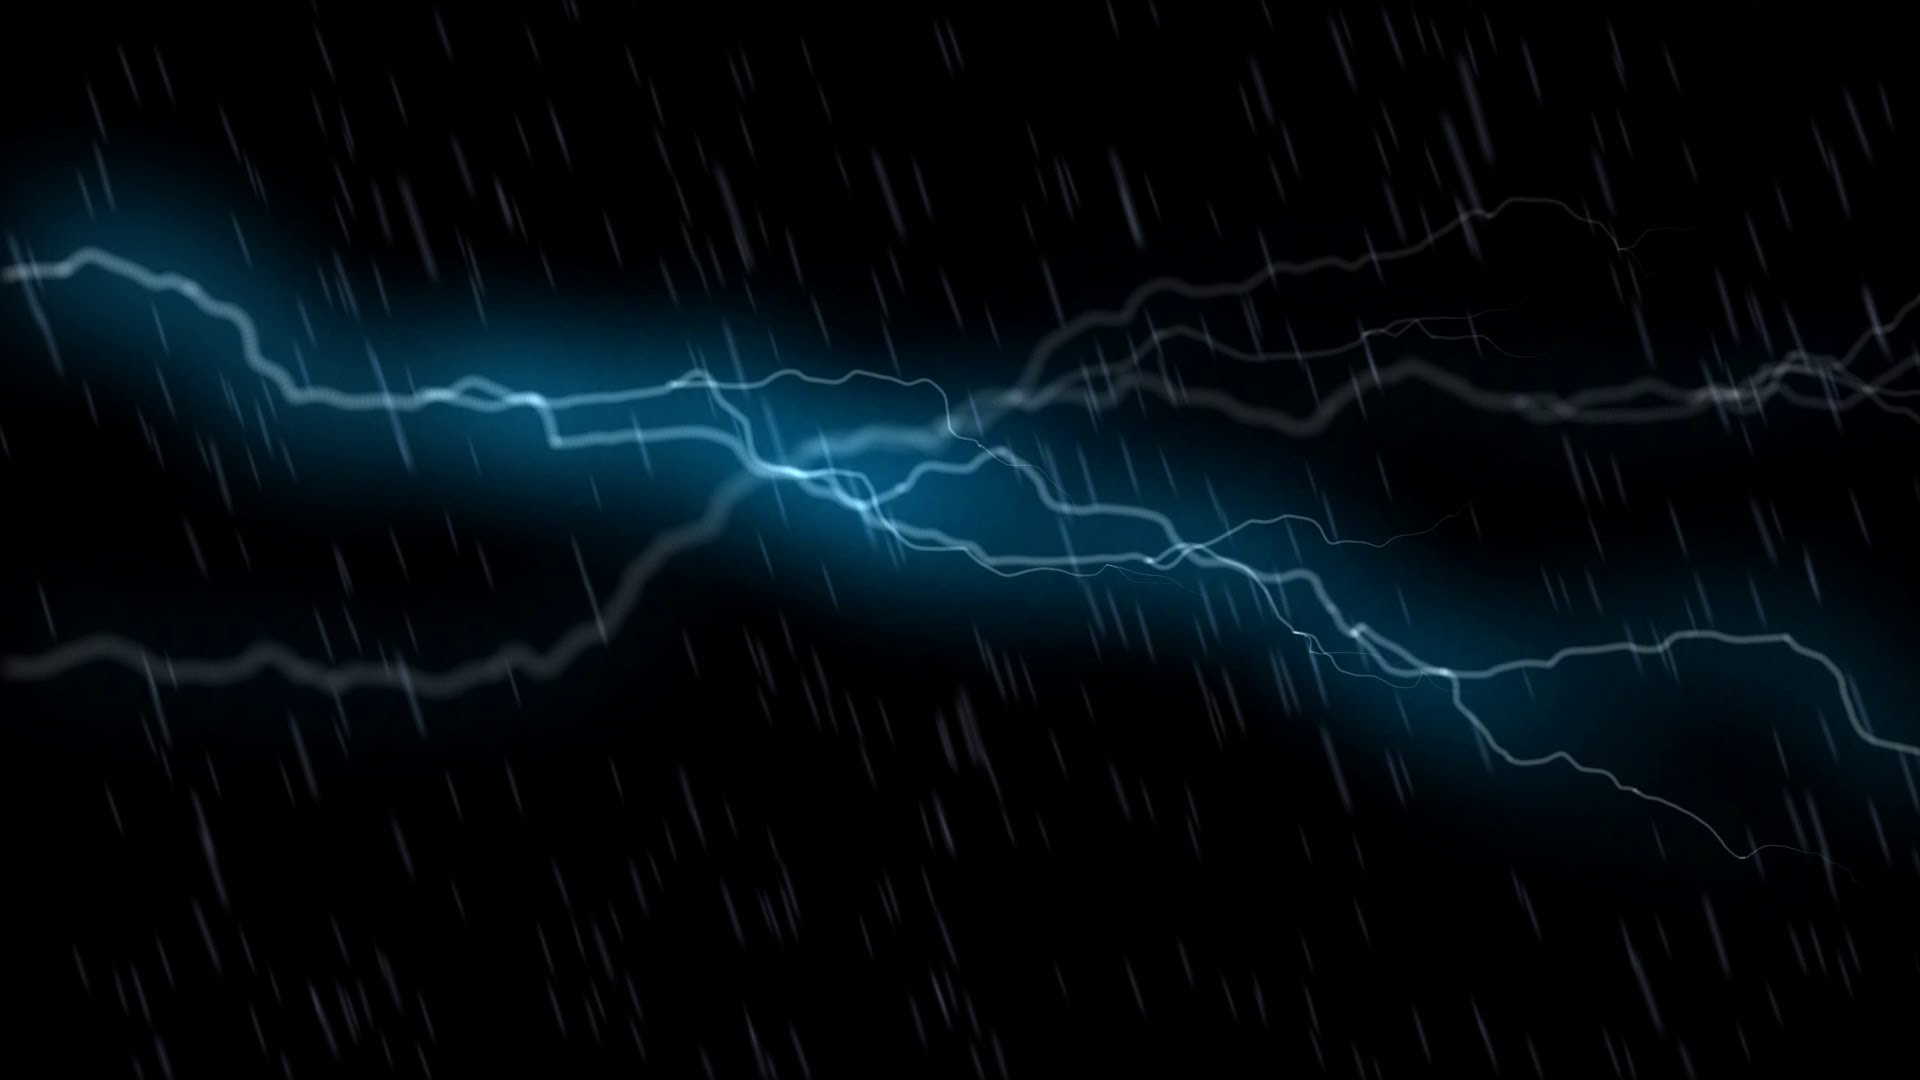 Thunder Storm and Rain Animation   HD Stock Footage 1920x1080